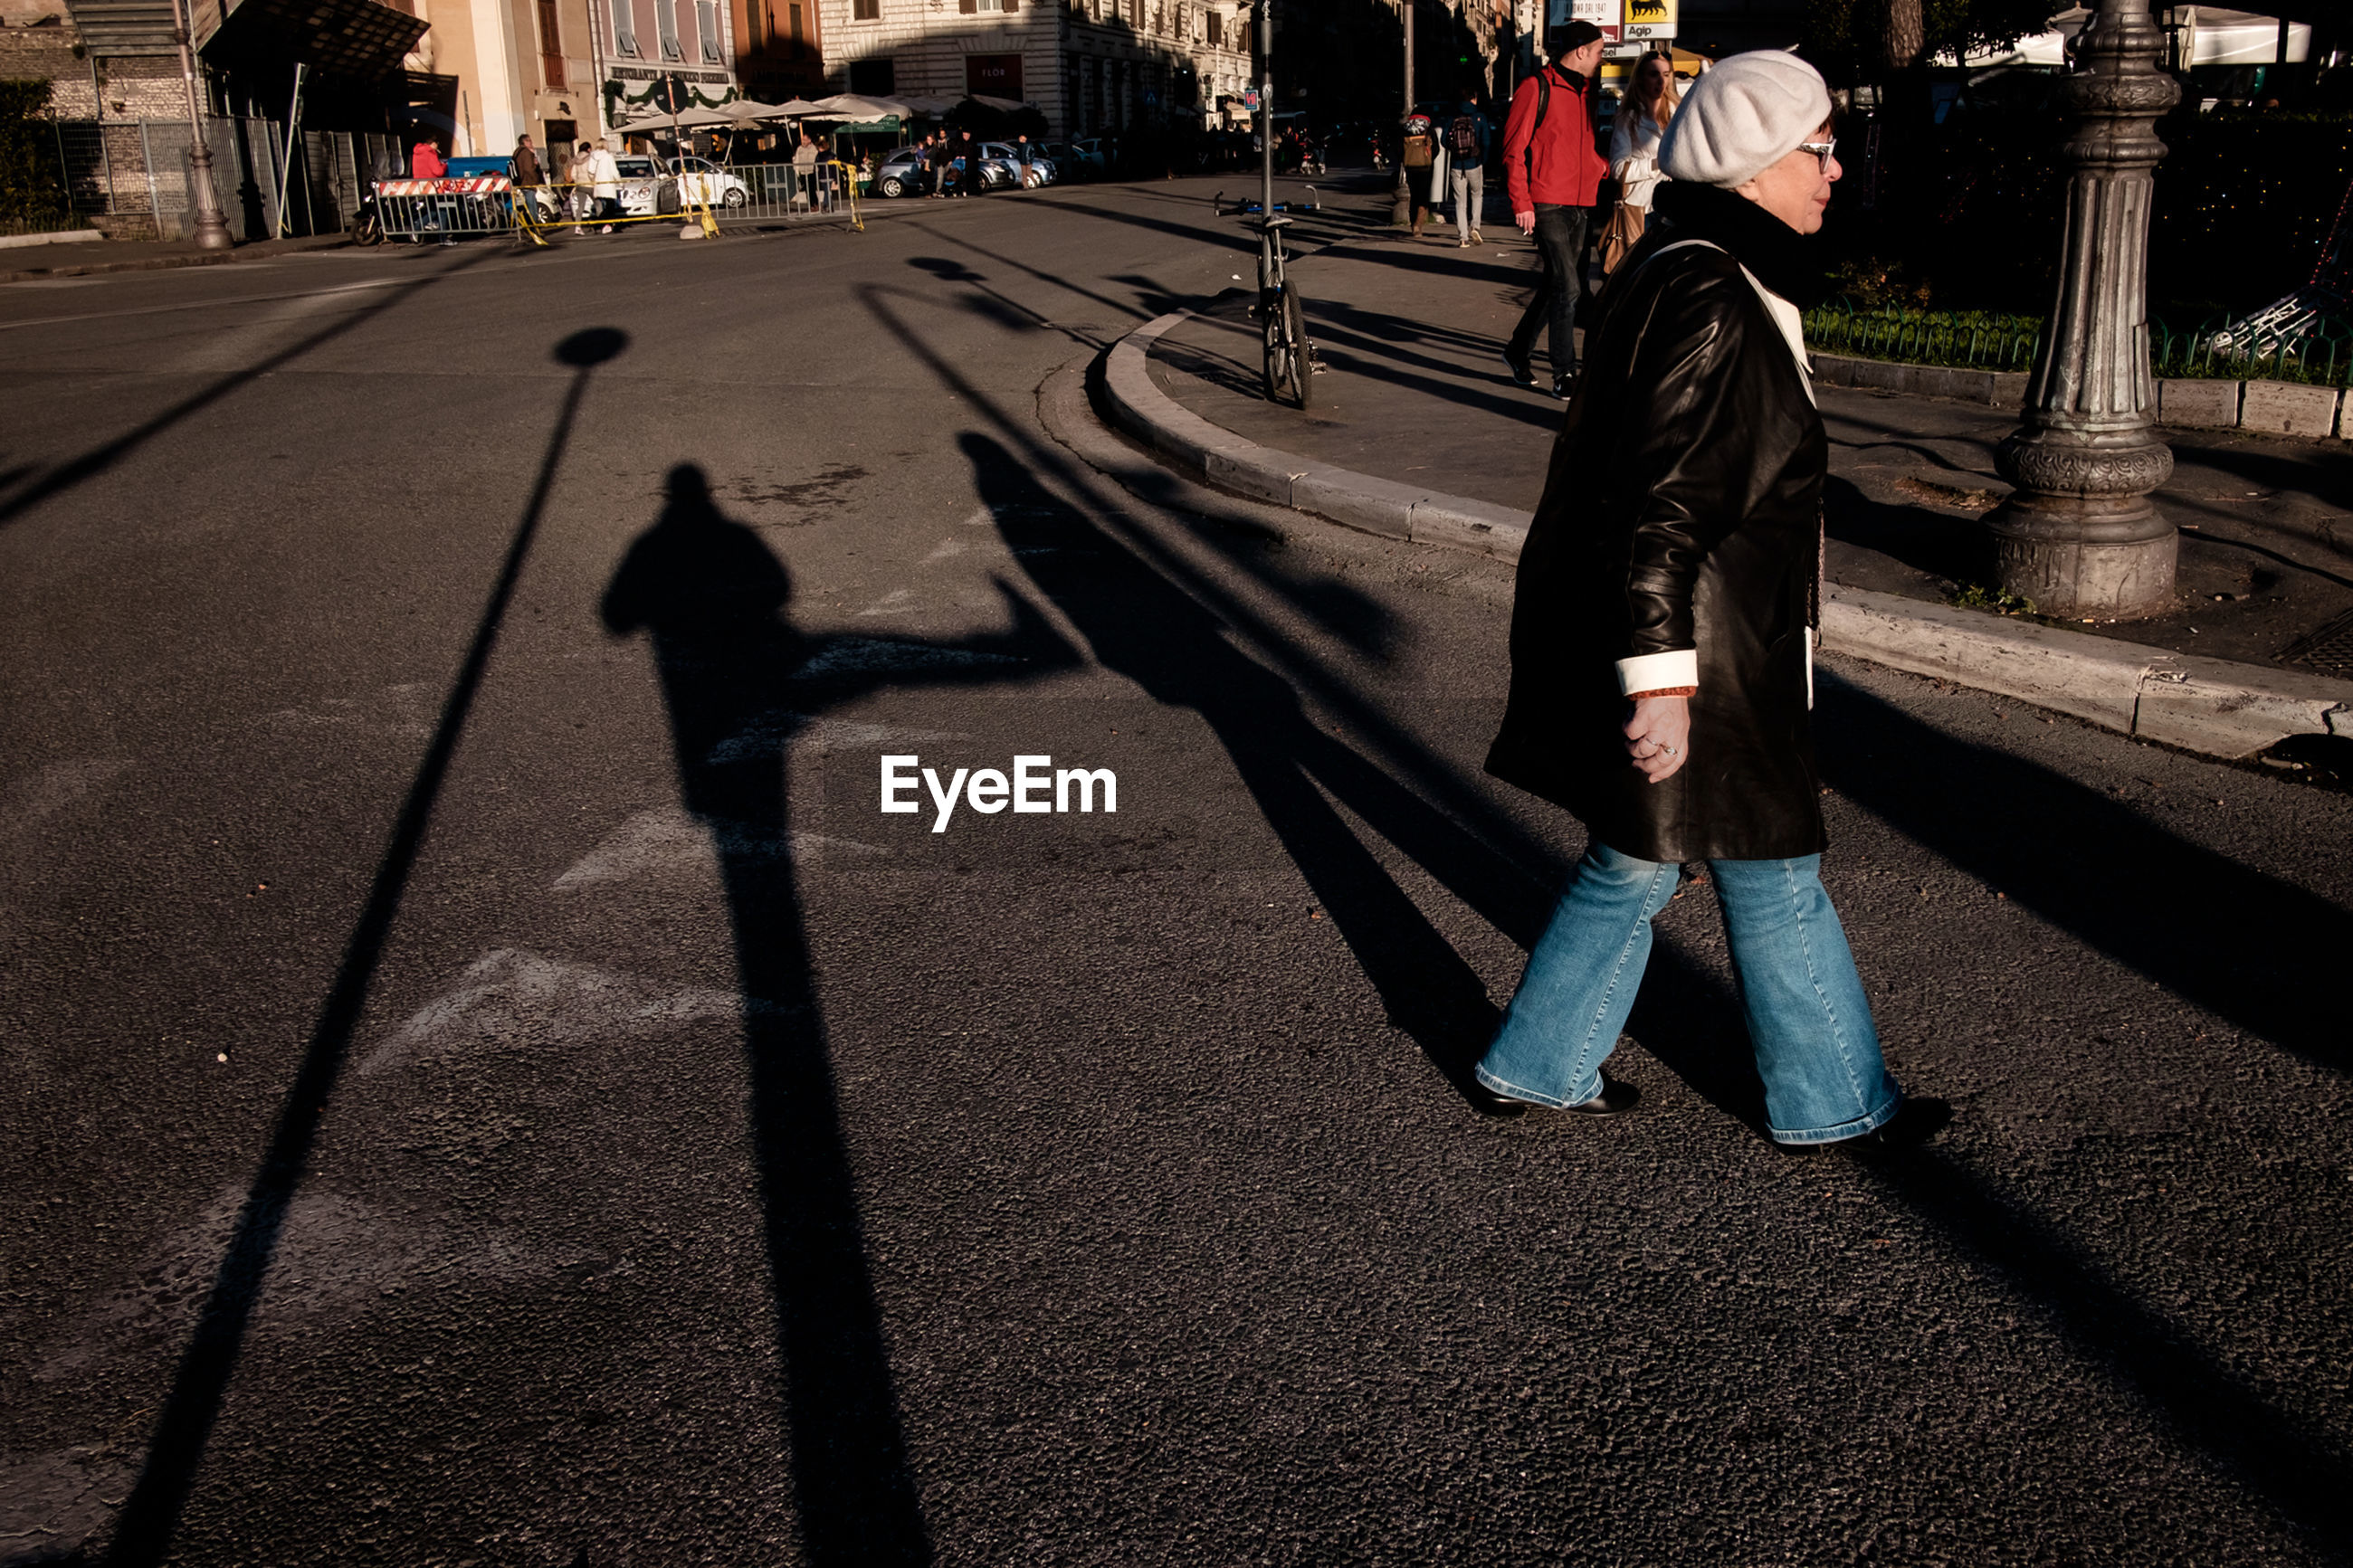 shadow, sunlight, real people, men, outdoors, day, leisure activity, lifestyles, road, full length, one person, city, adult, people